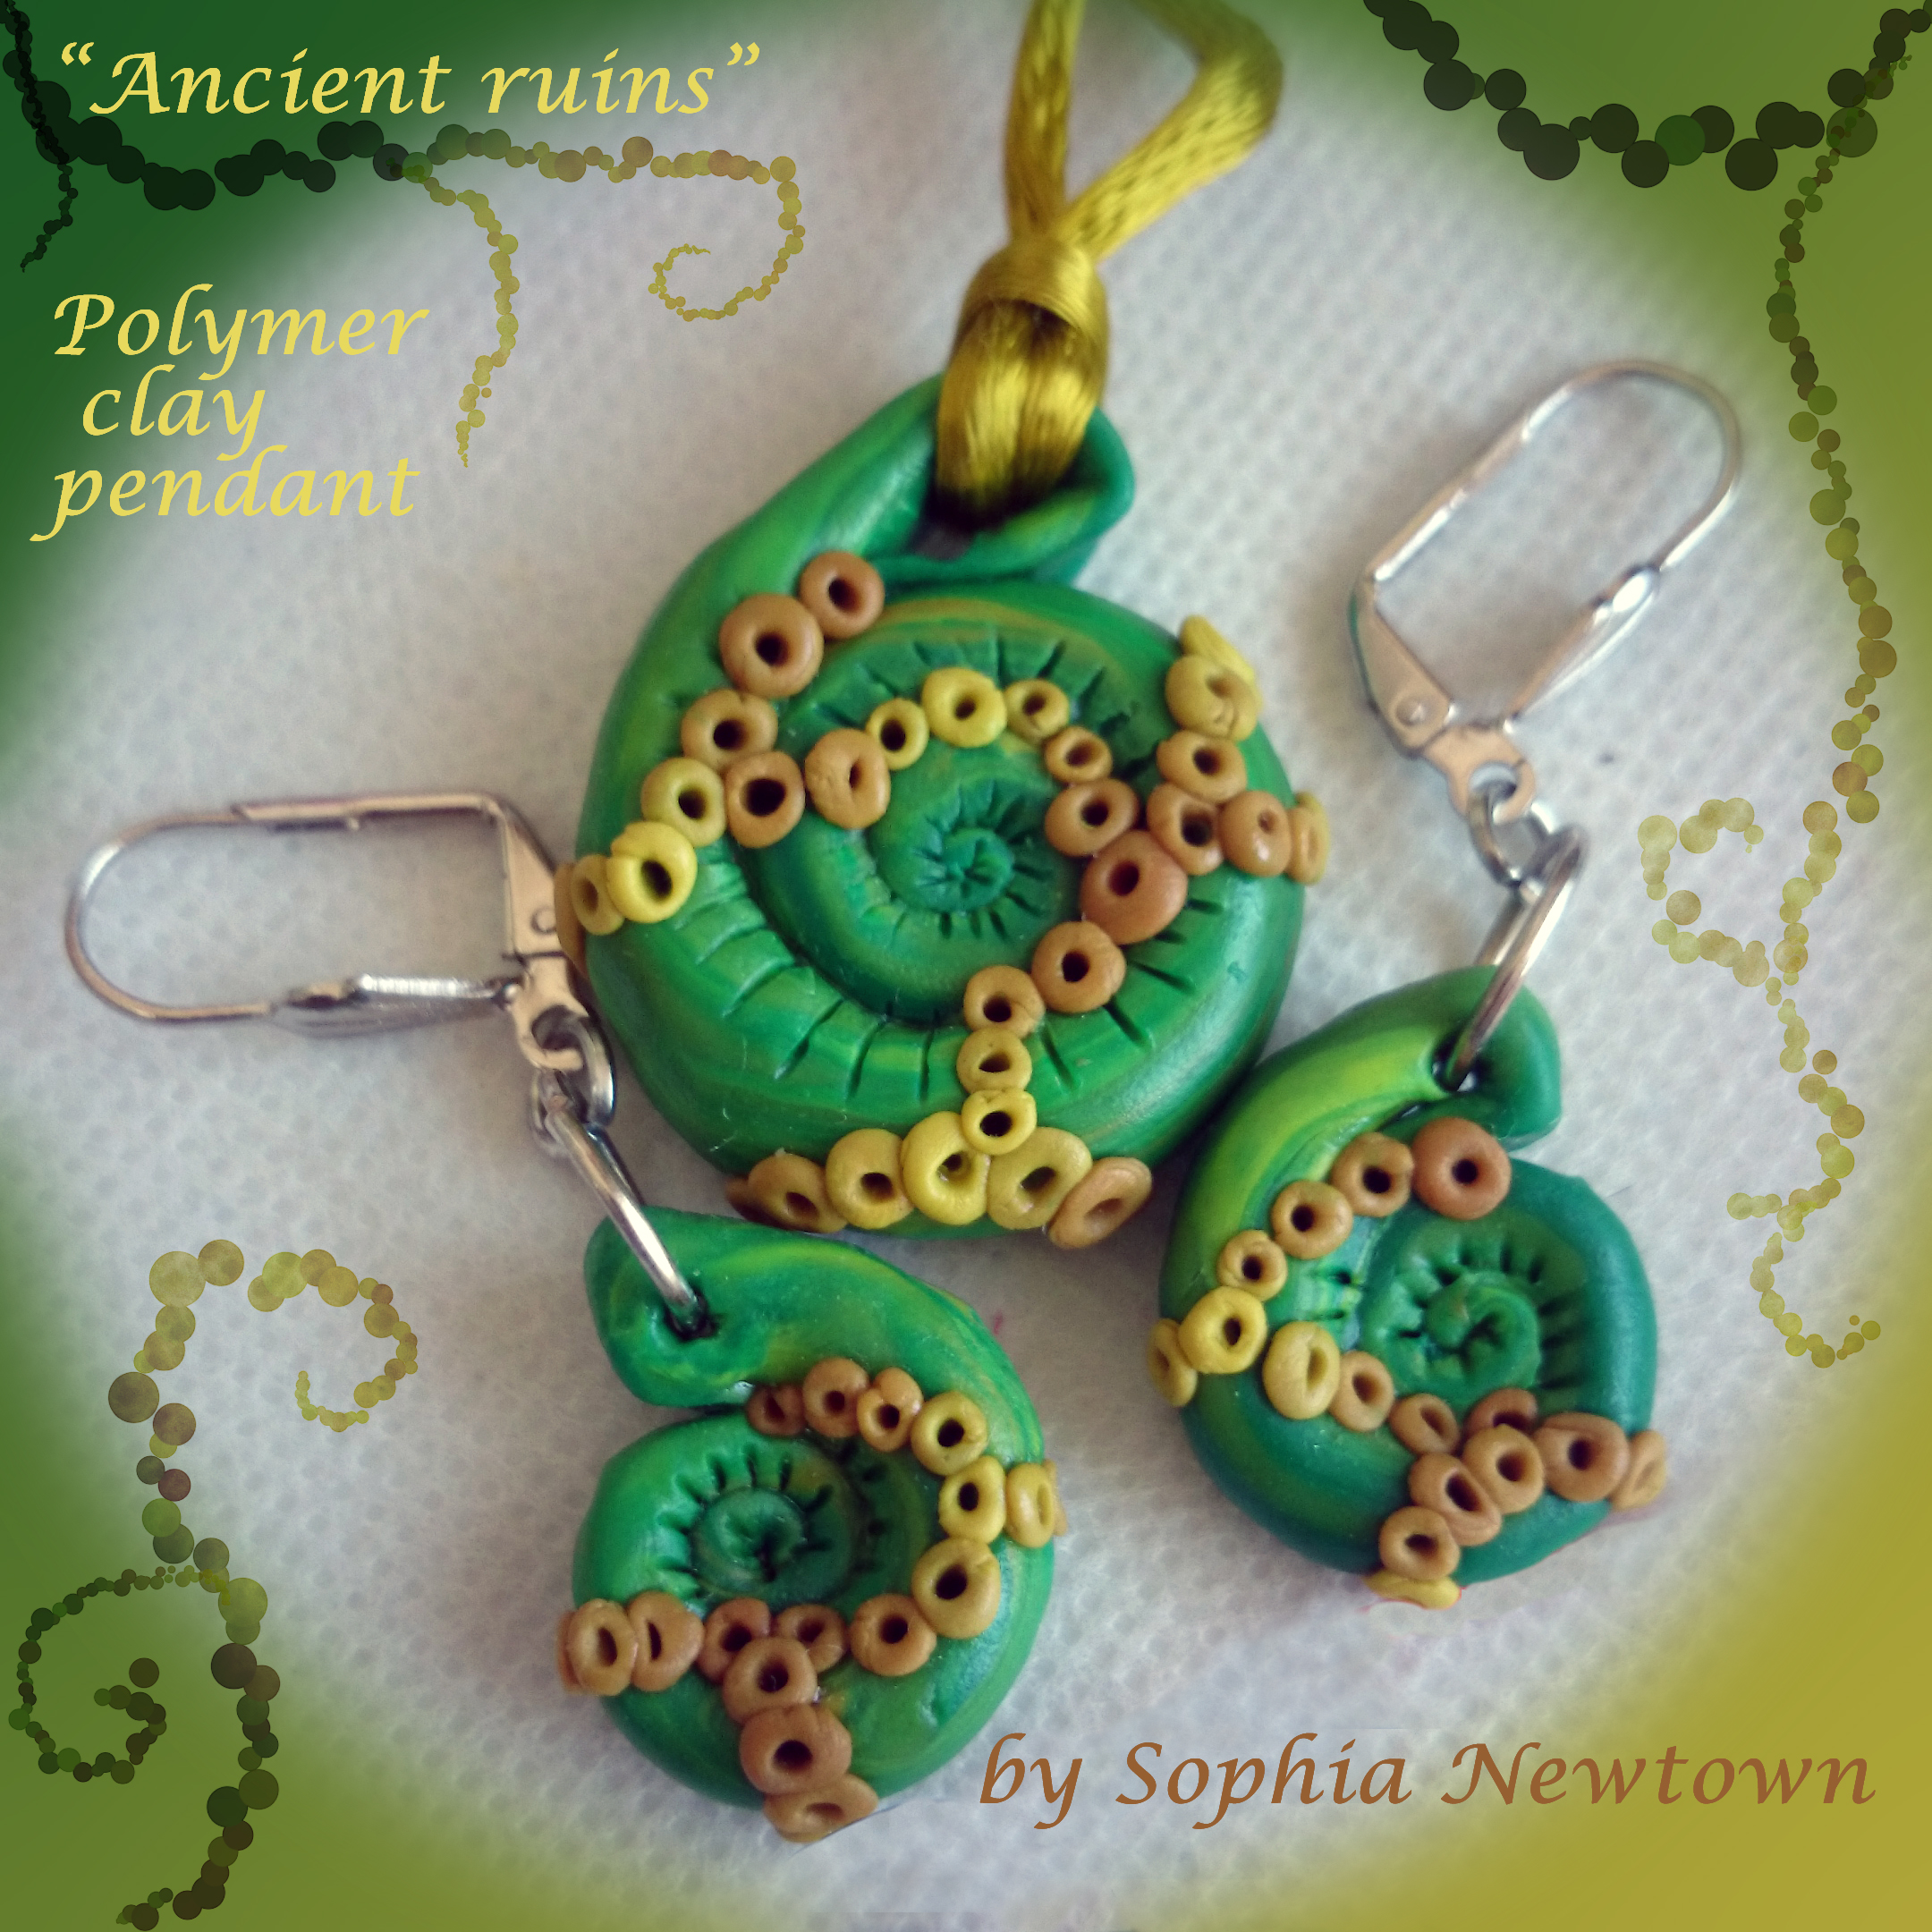 Ancient ruins jewelry set